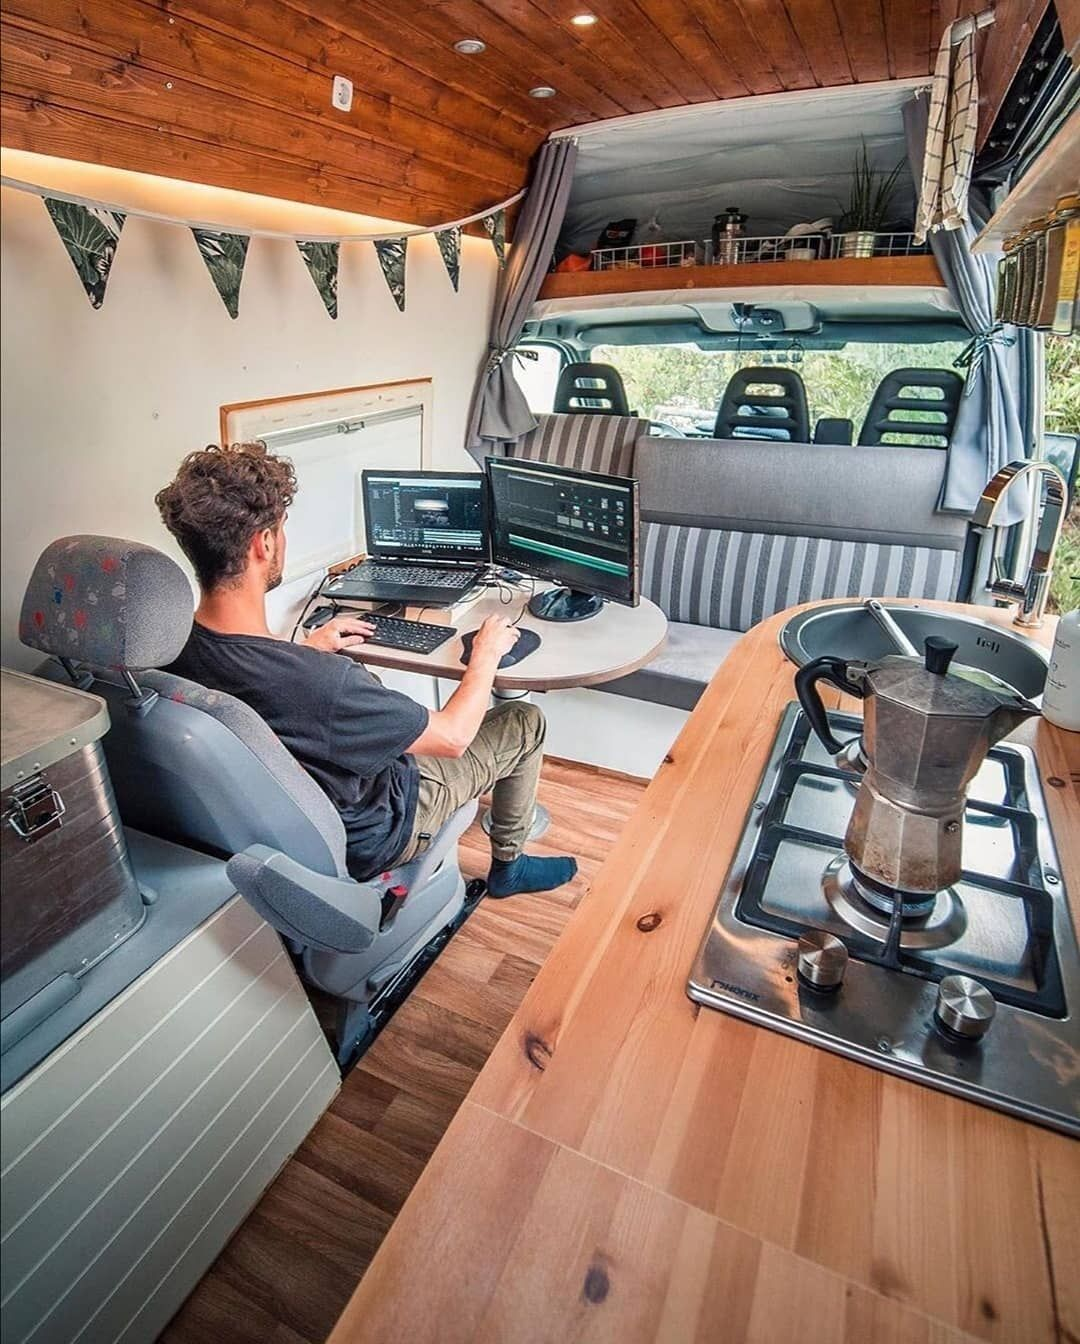 "Photo of Living Van Life on Instagram: ""📸 from @sebastian_schieren Follow if you want to get inspired Living Van Life ❤️ Use #livingvanlife to get featured 🚌"""